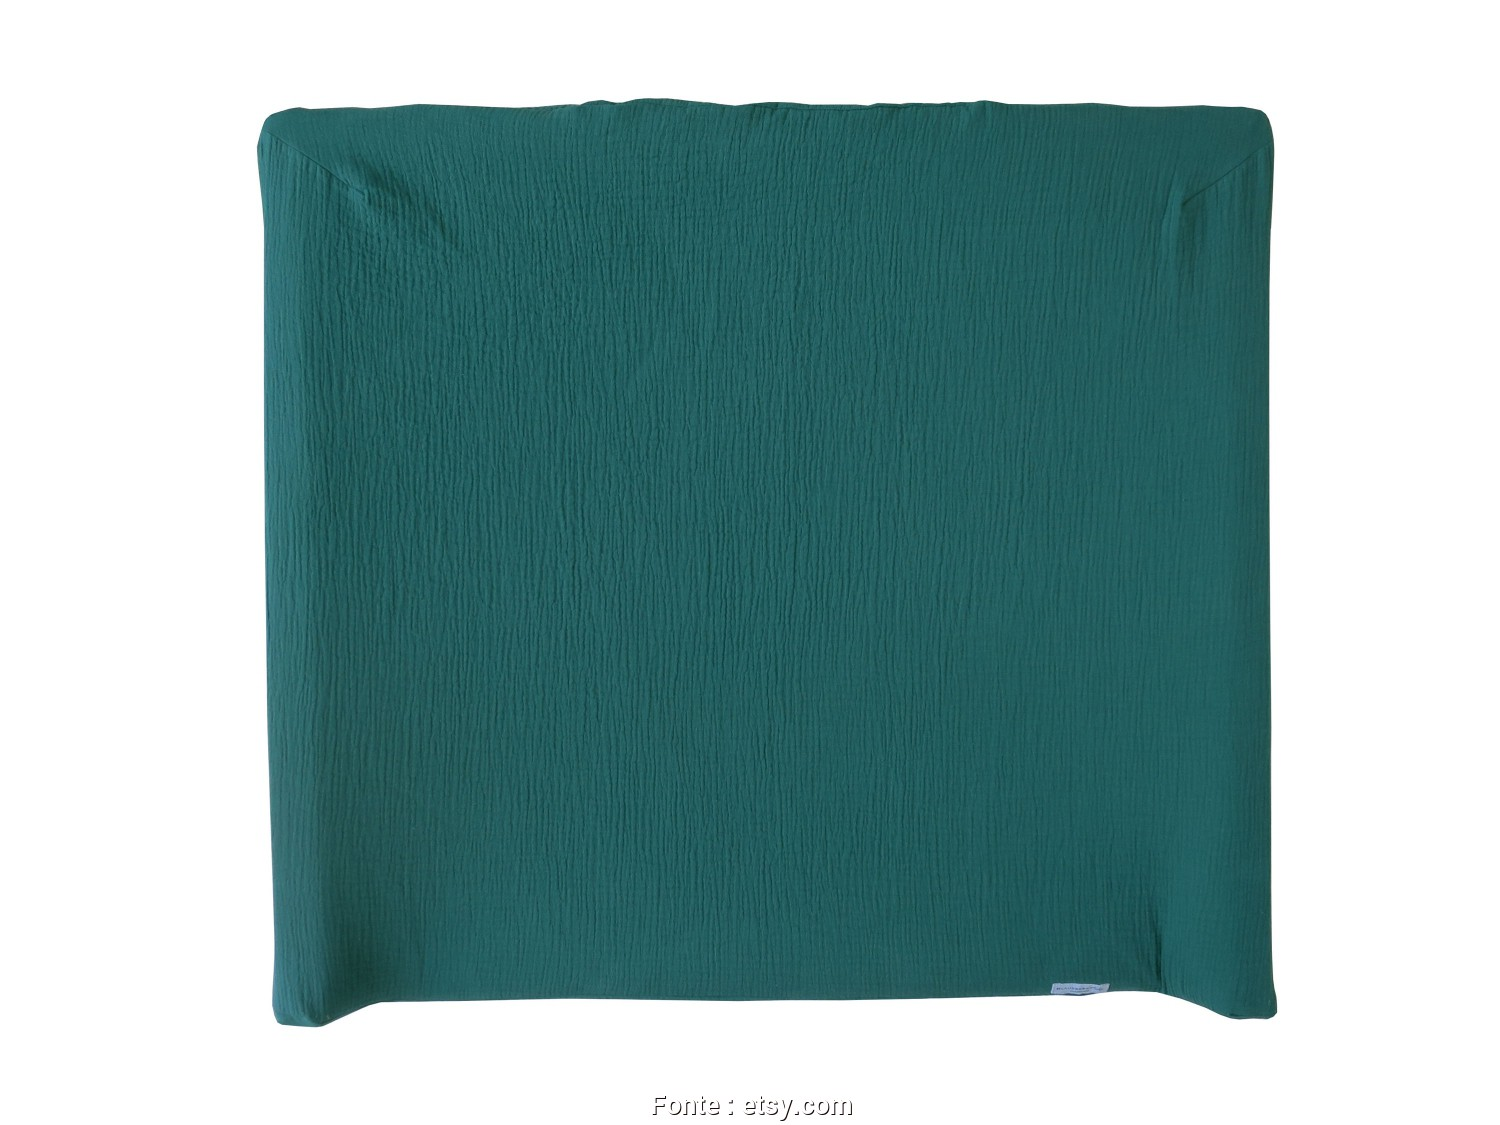 Ikea.Com Stoffe, Loveable Muslin Cover In Dark Green, Changing, / Changing, Vädra 74X80 Cm By IKEA, Handmade In Germany, OEKO-TEX® Standard 100